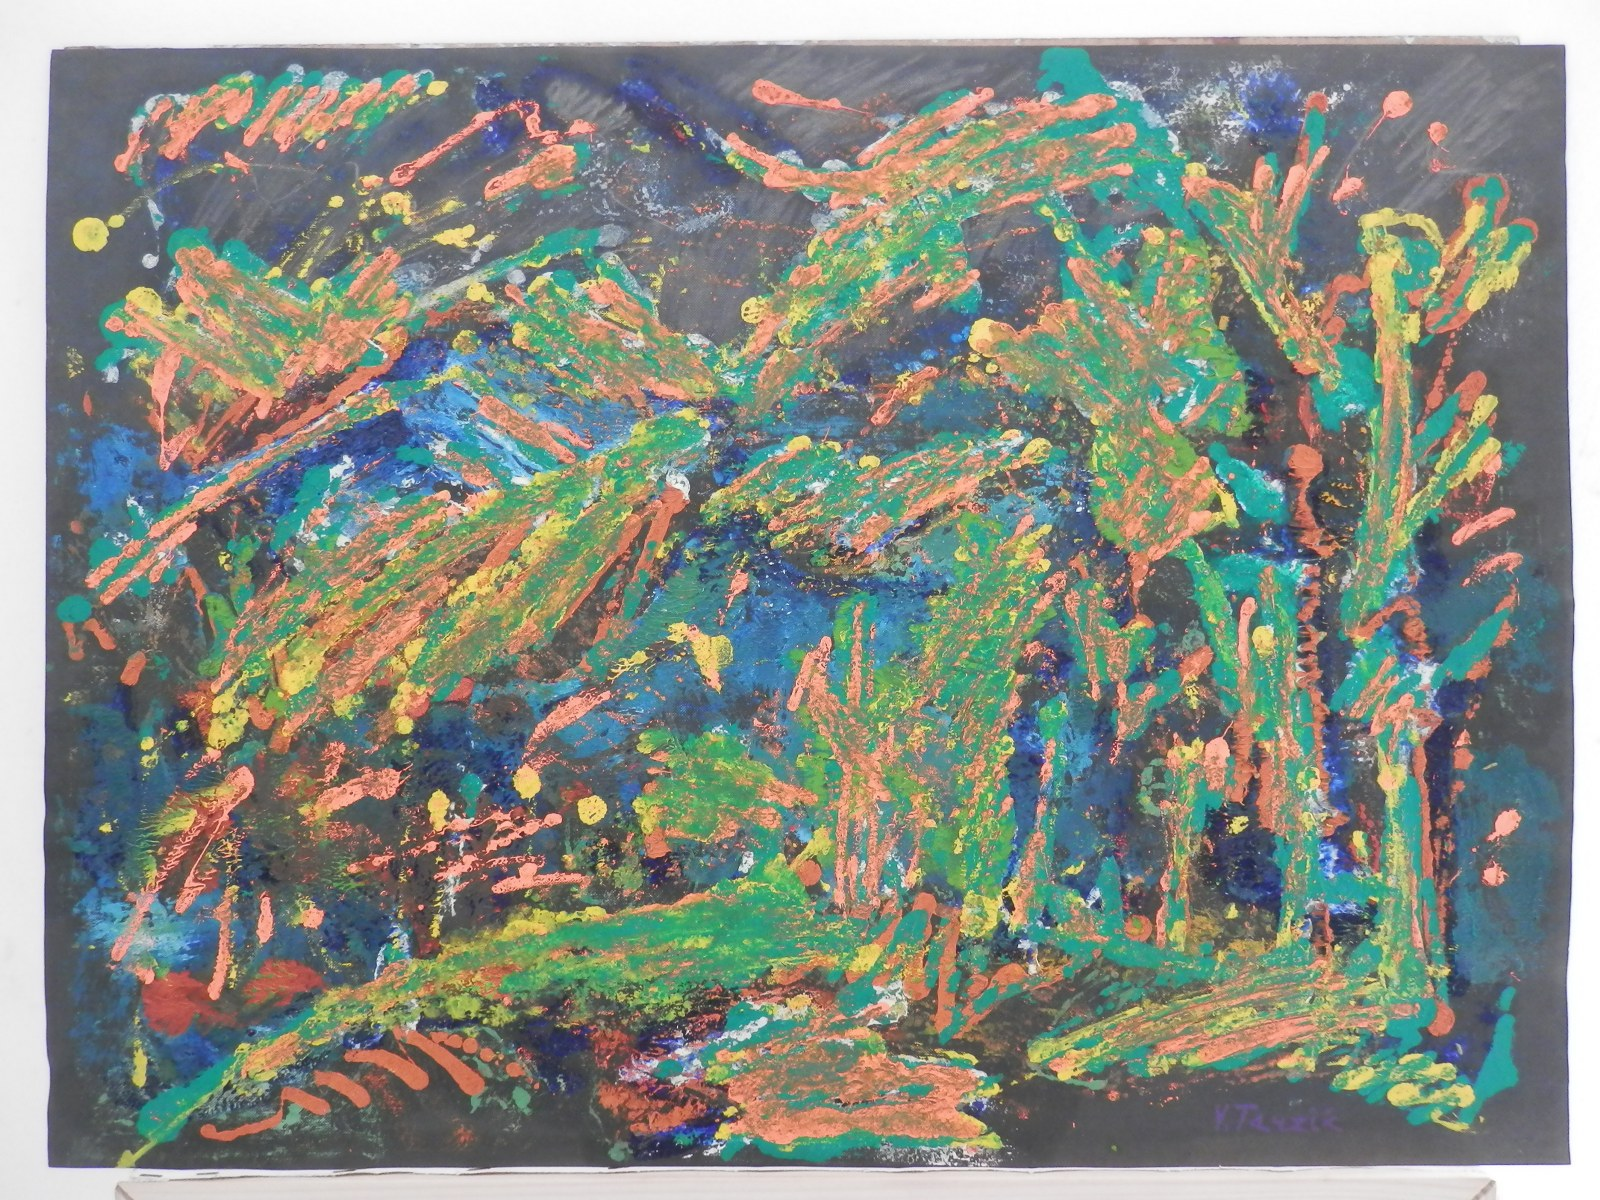 Br. 172 - Ulje na papiru - 50x67 <br> 	No. 172 - Oil on paper - 50x67